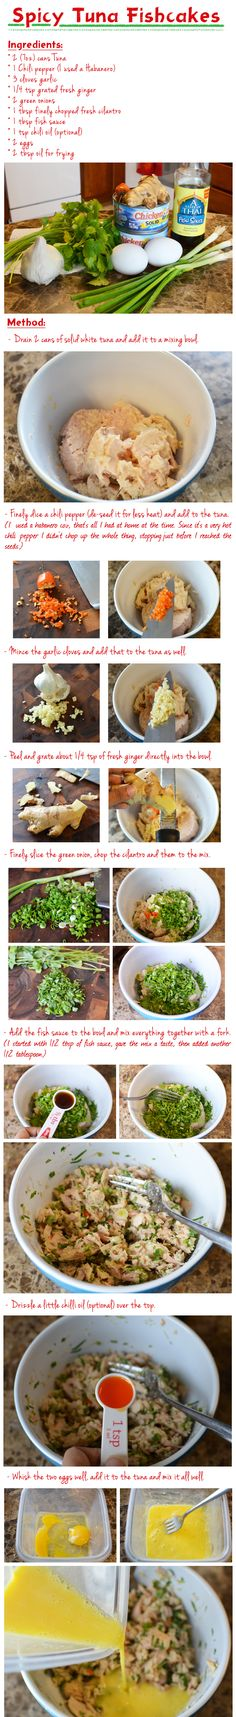 A recipe for fishcakes are super easy to make, healthy, gluten-free and very inexpensive using simple pantry items. If you like Thai and Asian flavors, then these fishcakes are definitely for you! Tuna Recipes, Seafood Recipes, Cooking Recipes, Healthy Recipes, Cooking Ideas, Fish Dishes, Seafood Dishes, Fish And Seafood, Fishcakes